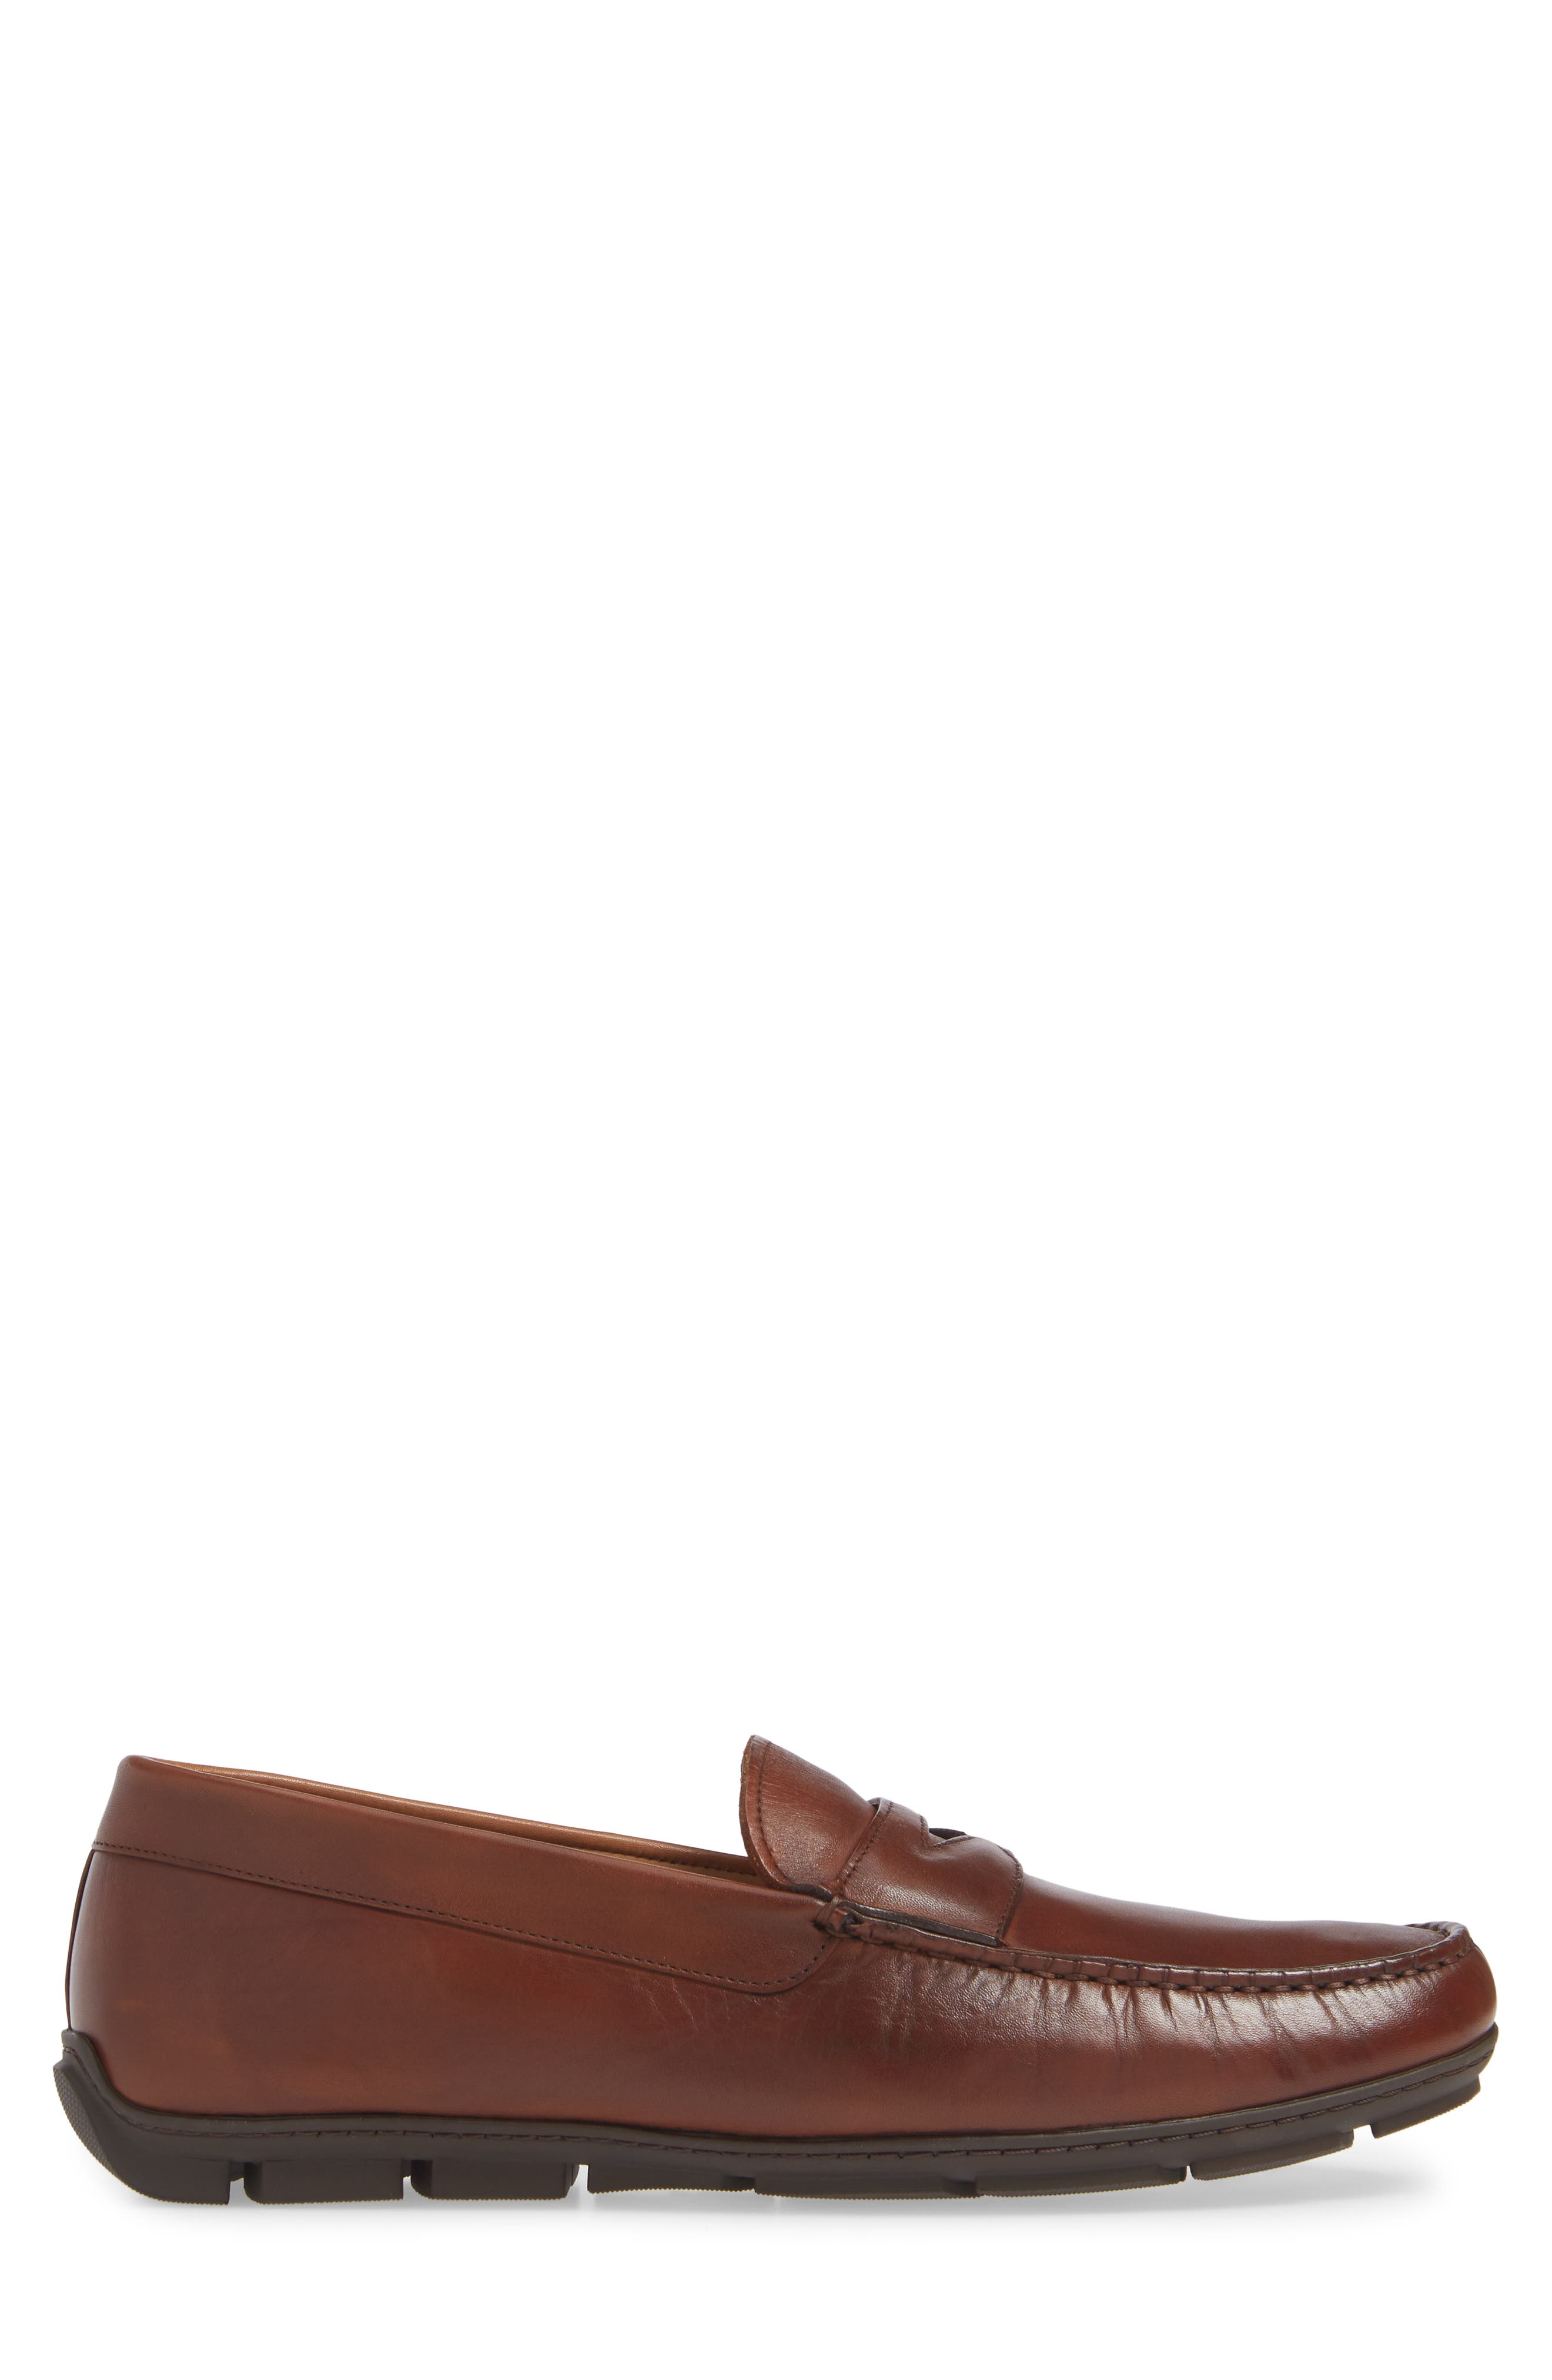 VINCE CAMUTO, Ditto Driving Shoe, Alternate thumbnail 3, color, COGNAC LEATHER